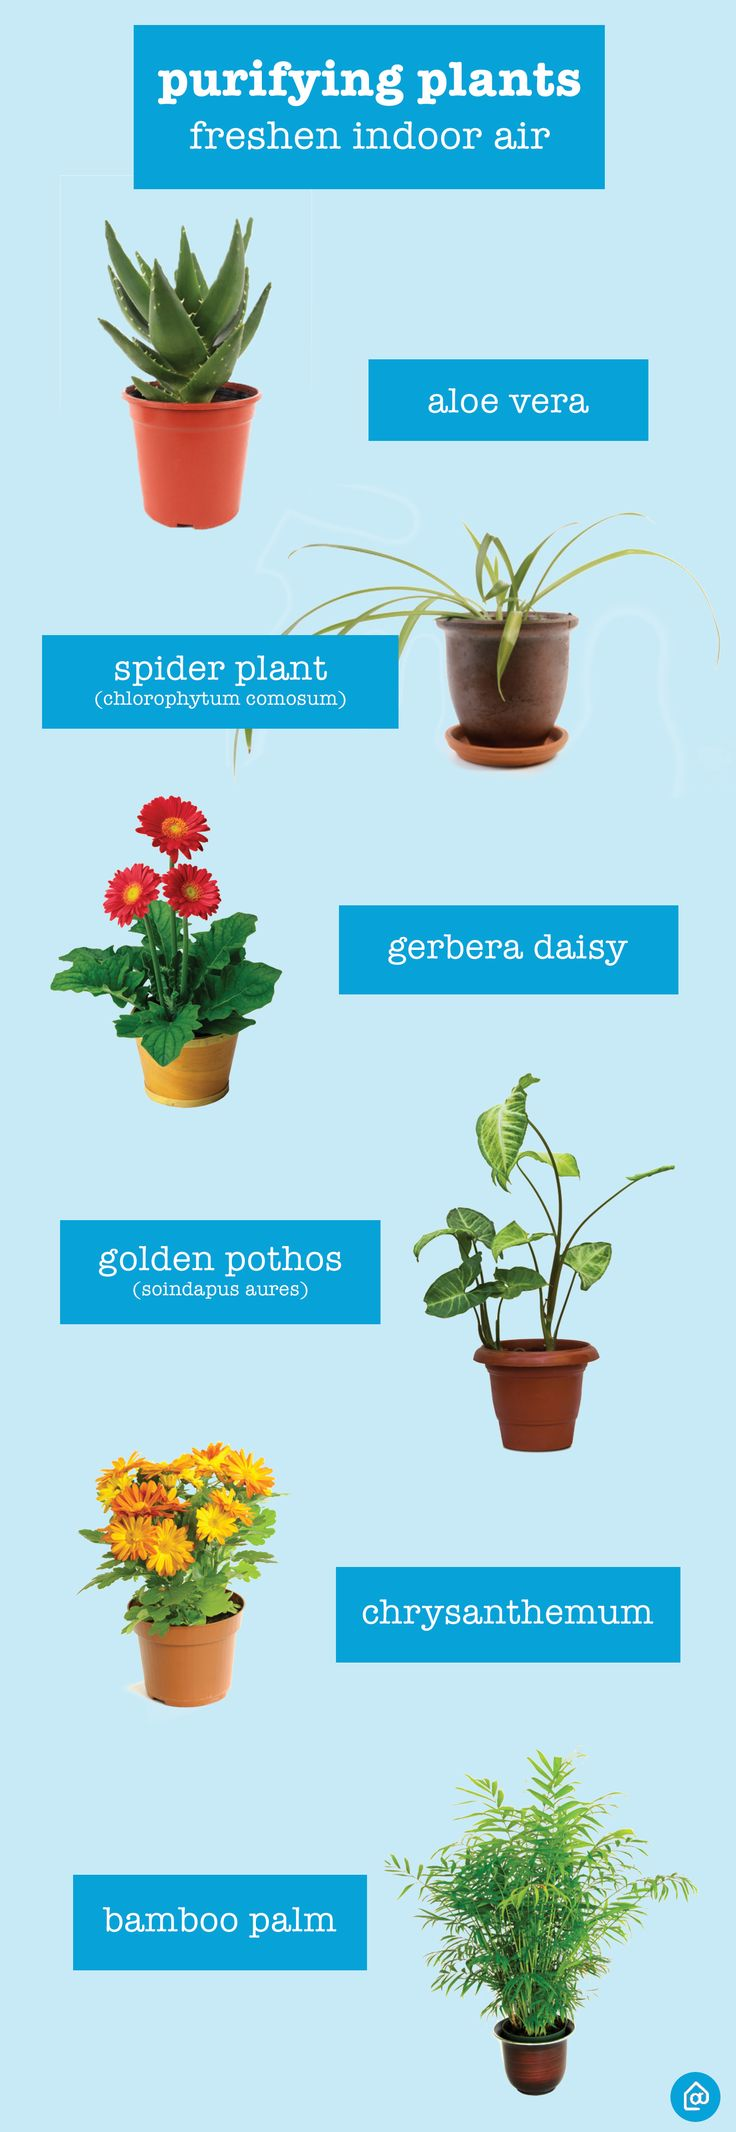 Did you know that some plants help naturally clean the air in your home? It's true! Get started with these plants: Aloe Vera, Spider plants, Gerbera Daisies, Golden Pothos, Chrysanthemums, and Bamboo Palms.